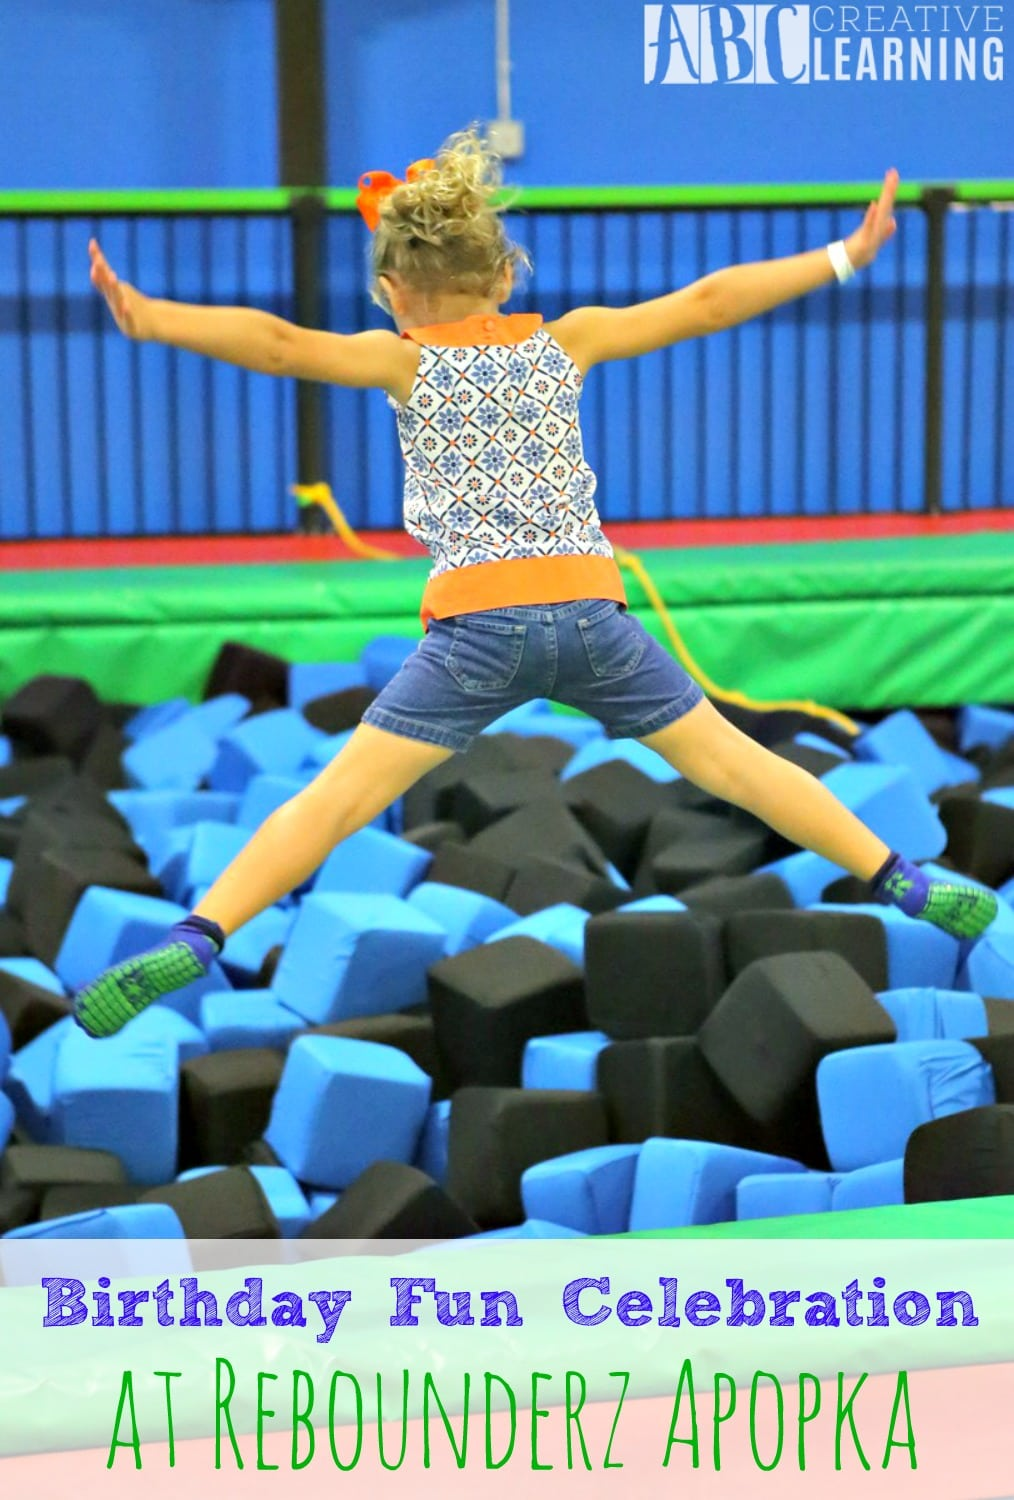 Birthday Fun Celebration at Rebounderz Apopka - abccreativelearning.com